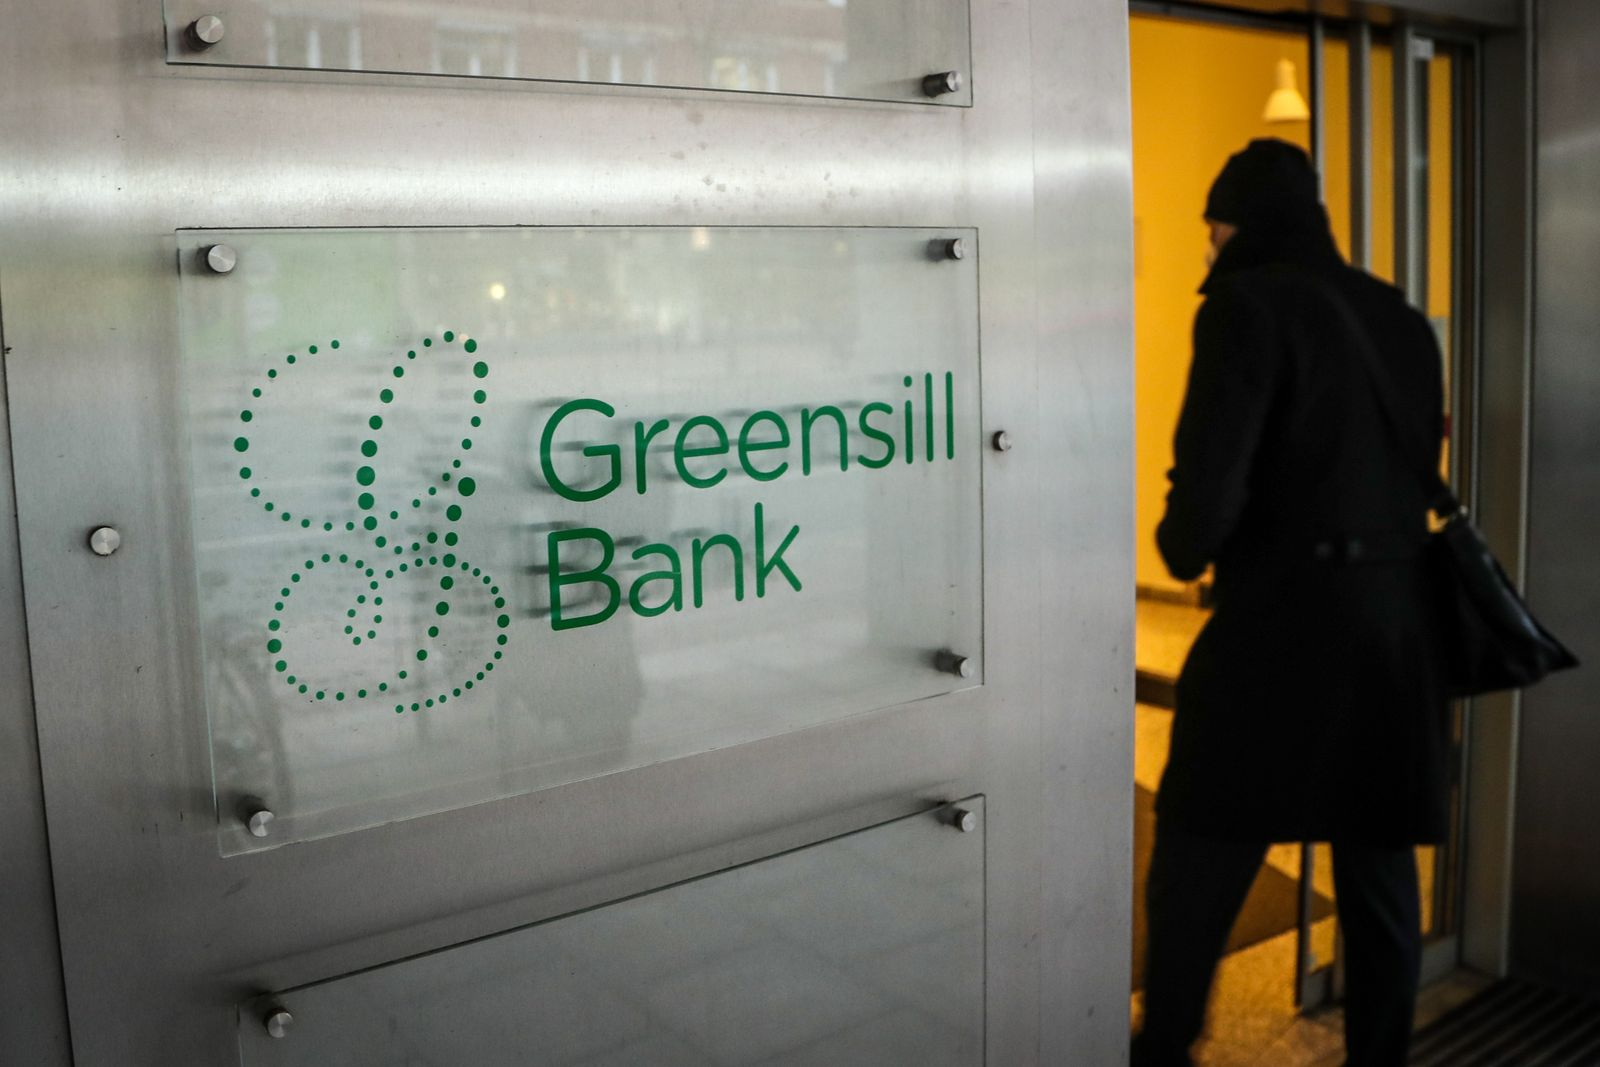 German finance authorities intervene at Greensill Bank